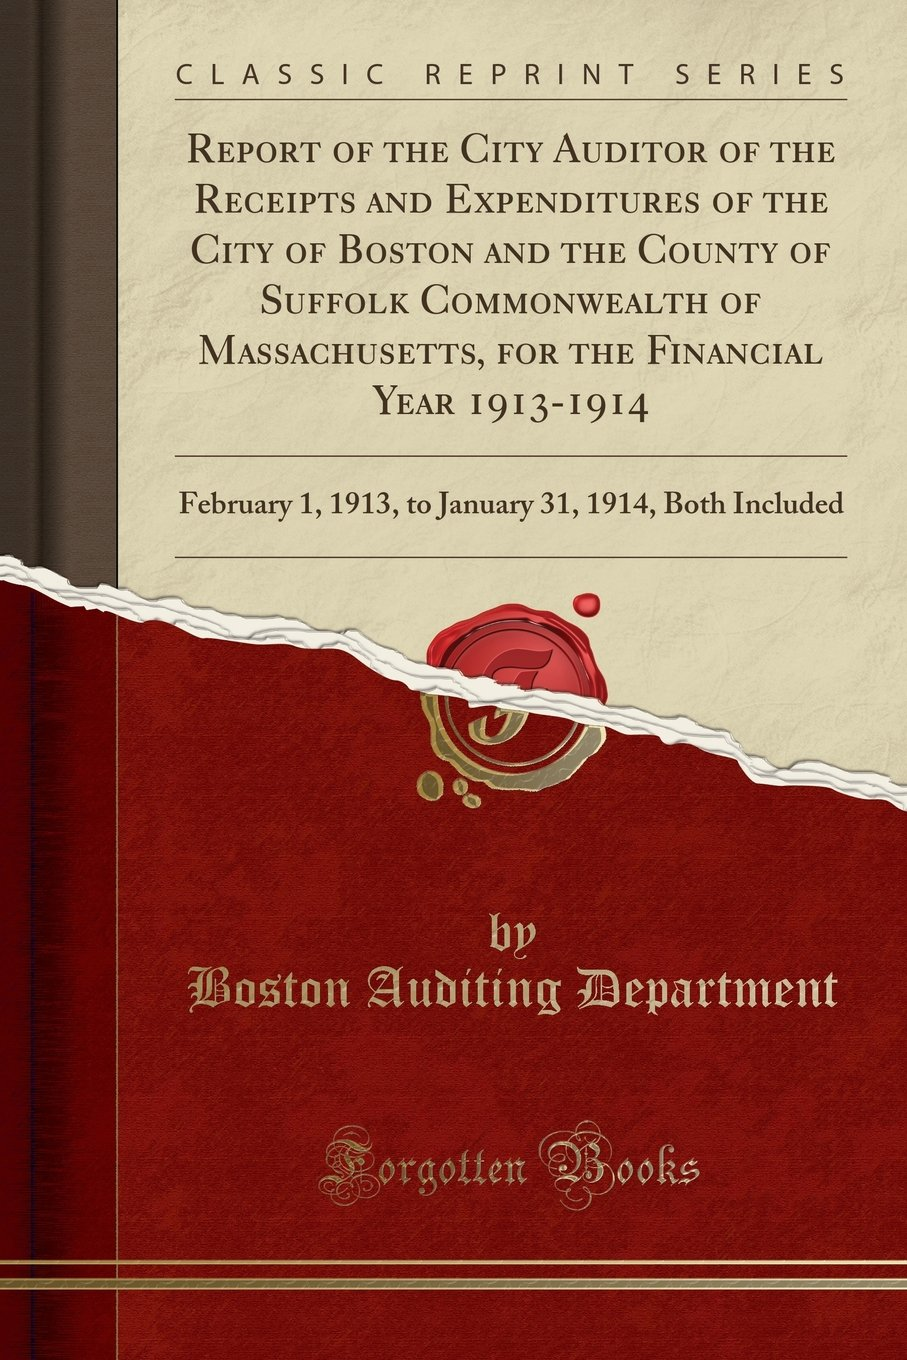 Report of the City Auditor of the Receipts and Expenditures of the City of Boston and the County of Suffolk Commonwealth of Massachusetts, for the ... 31, 1914, Both Included (Classic Reprint) ebook